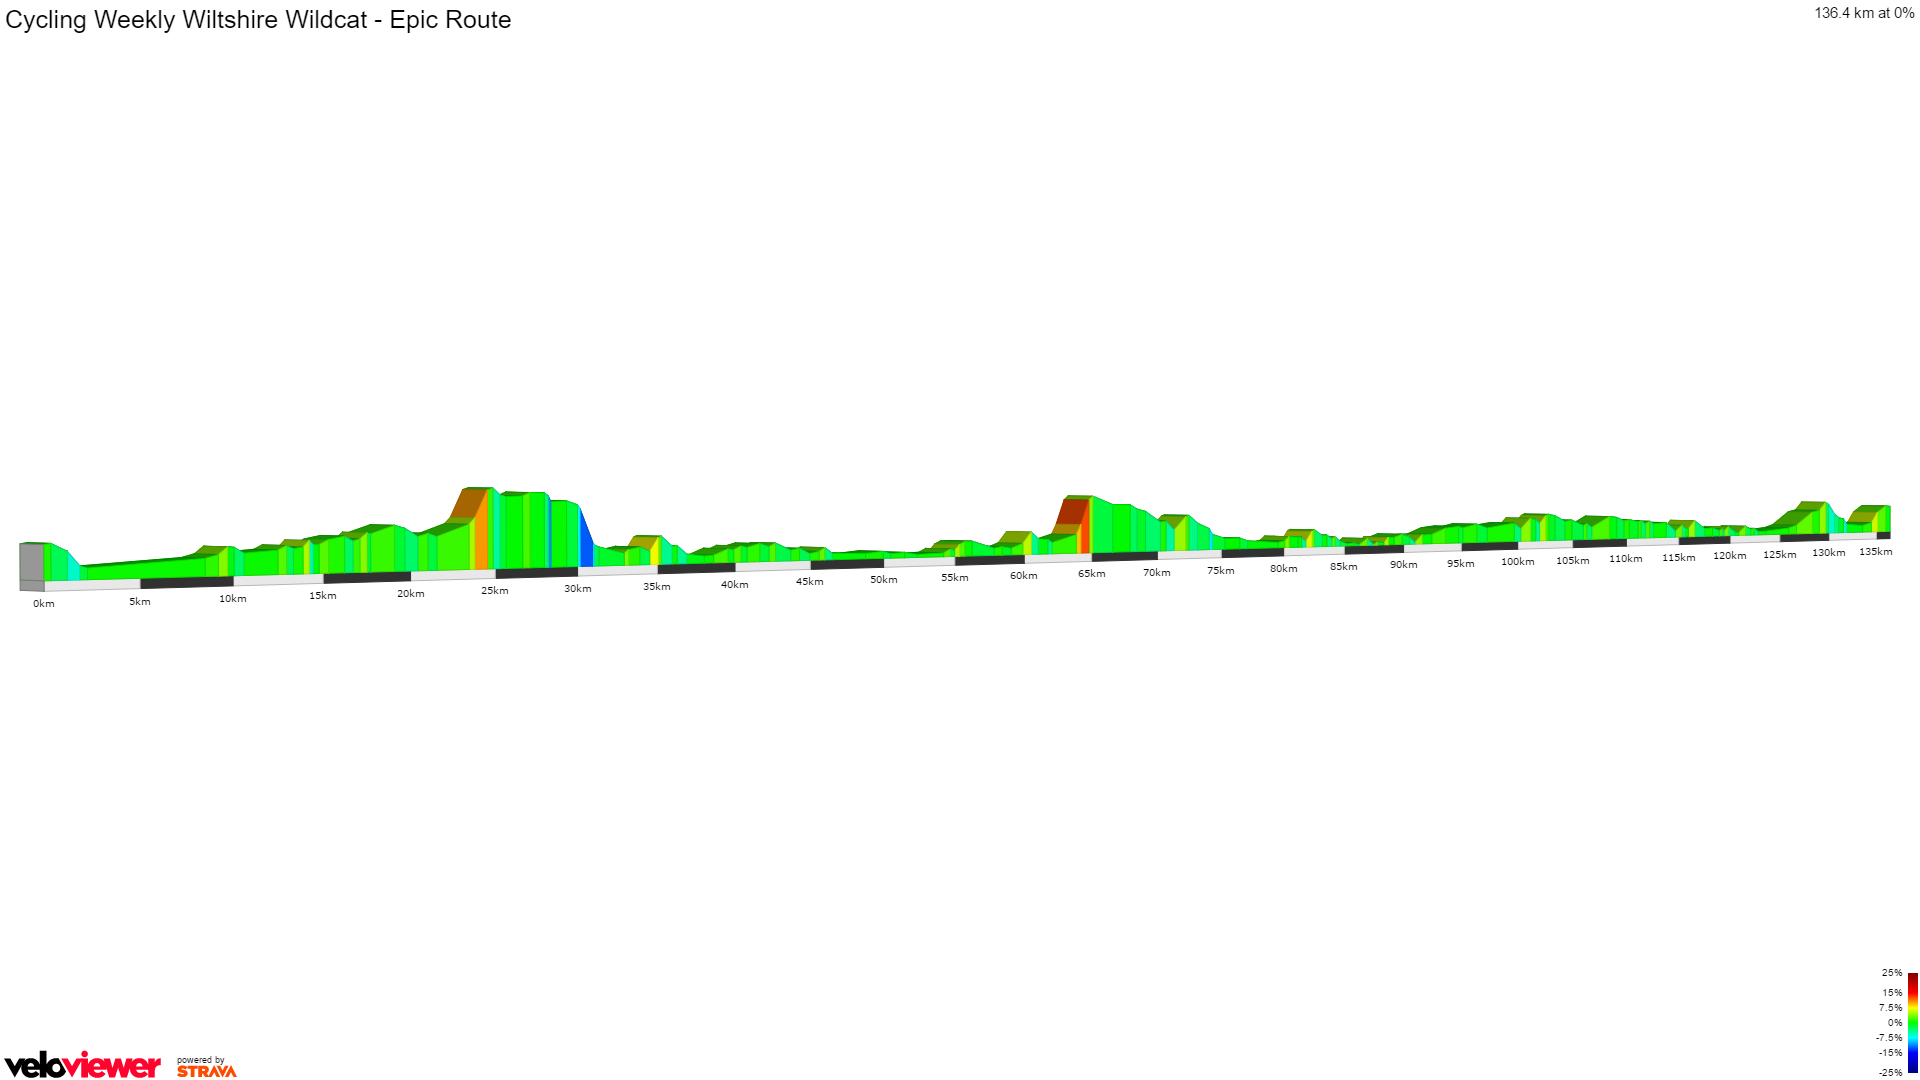 2D Elevation profile image for Cycling Weekly Wiltshire Wildcat - Epic Route